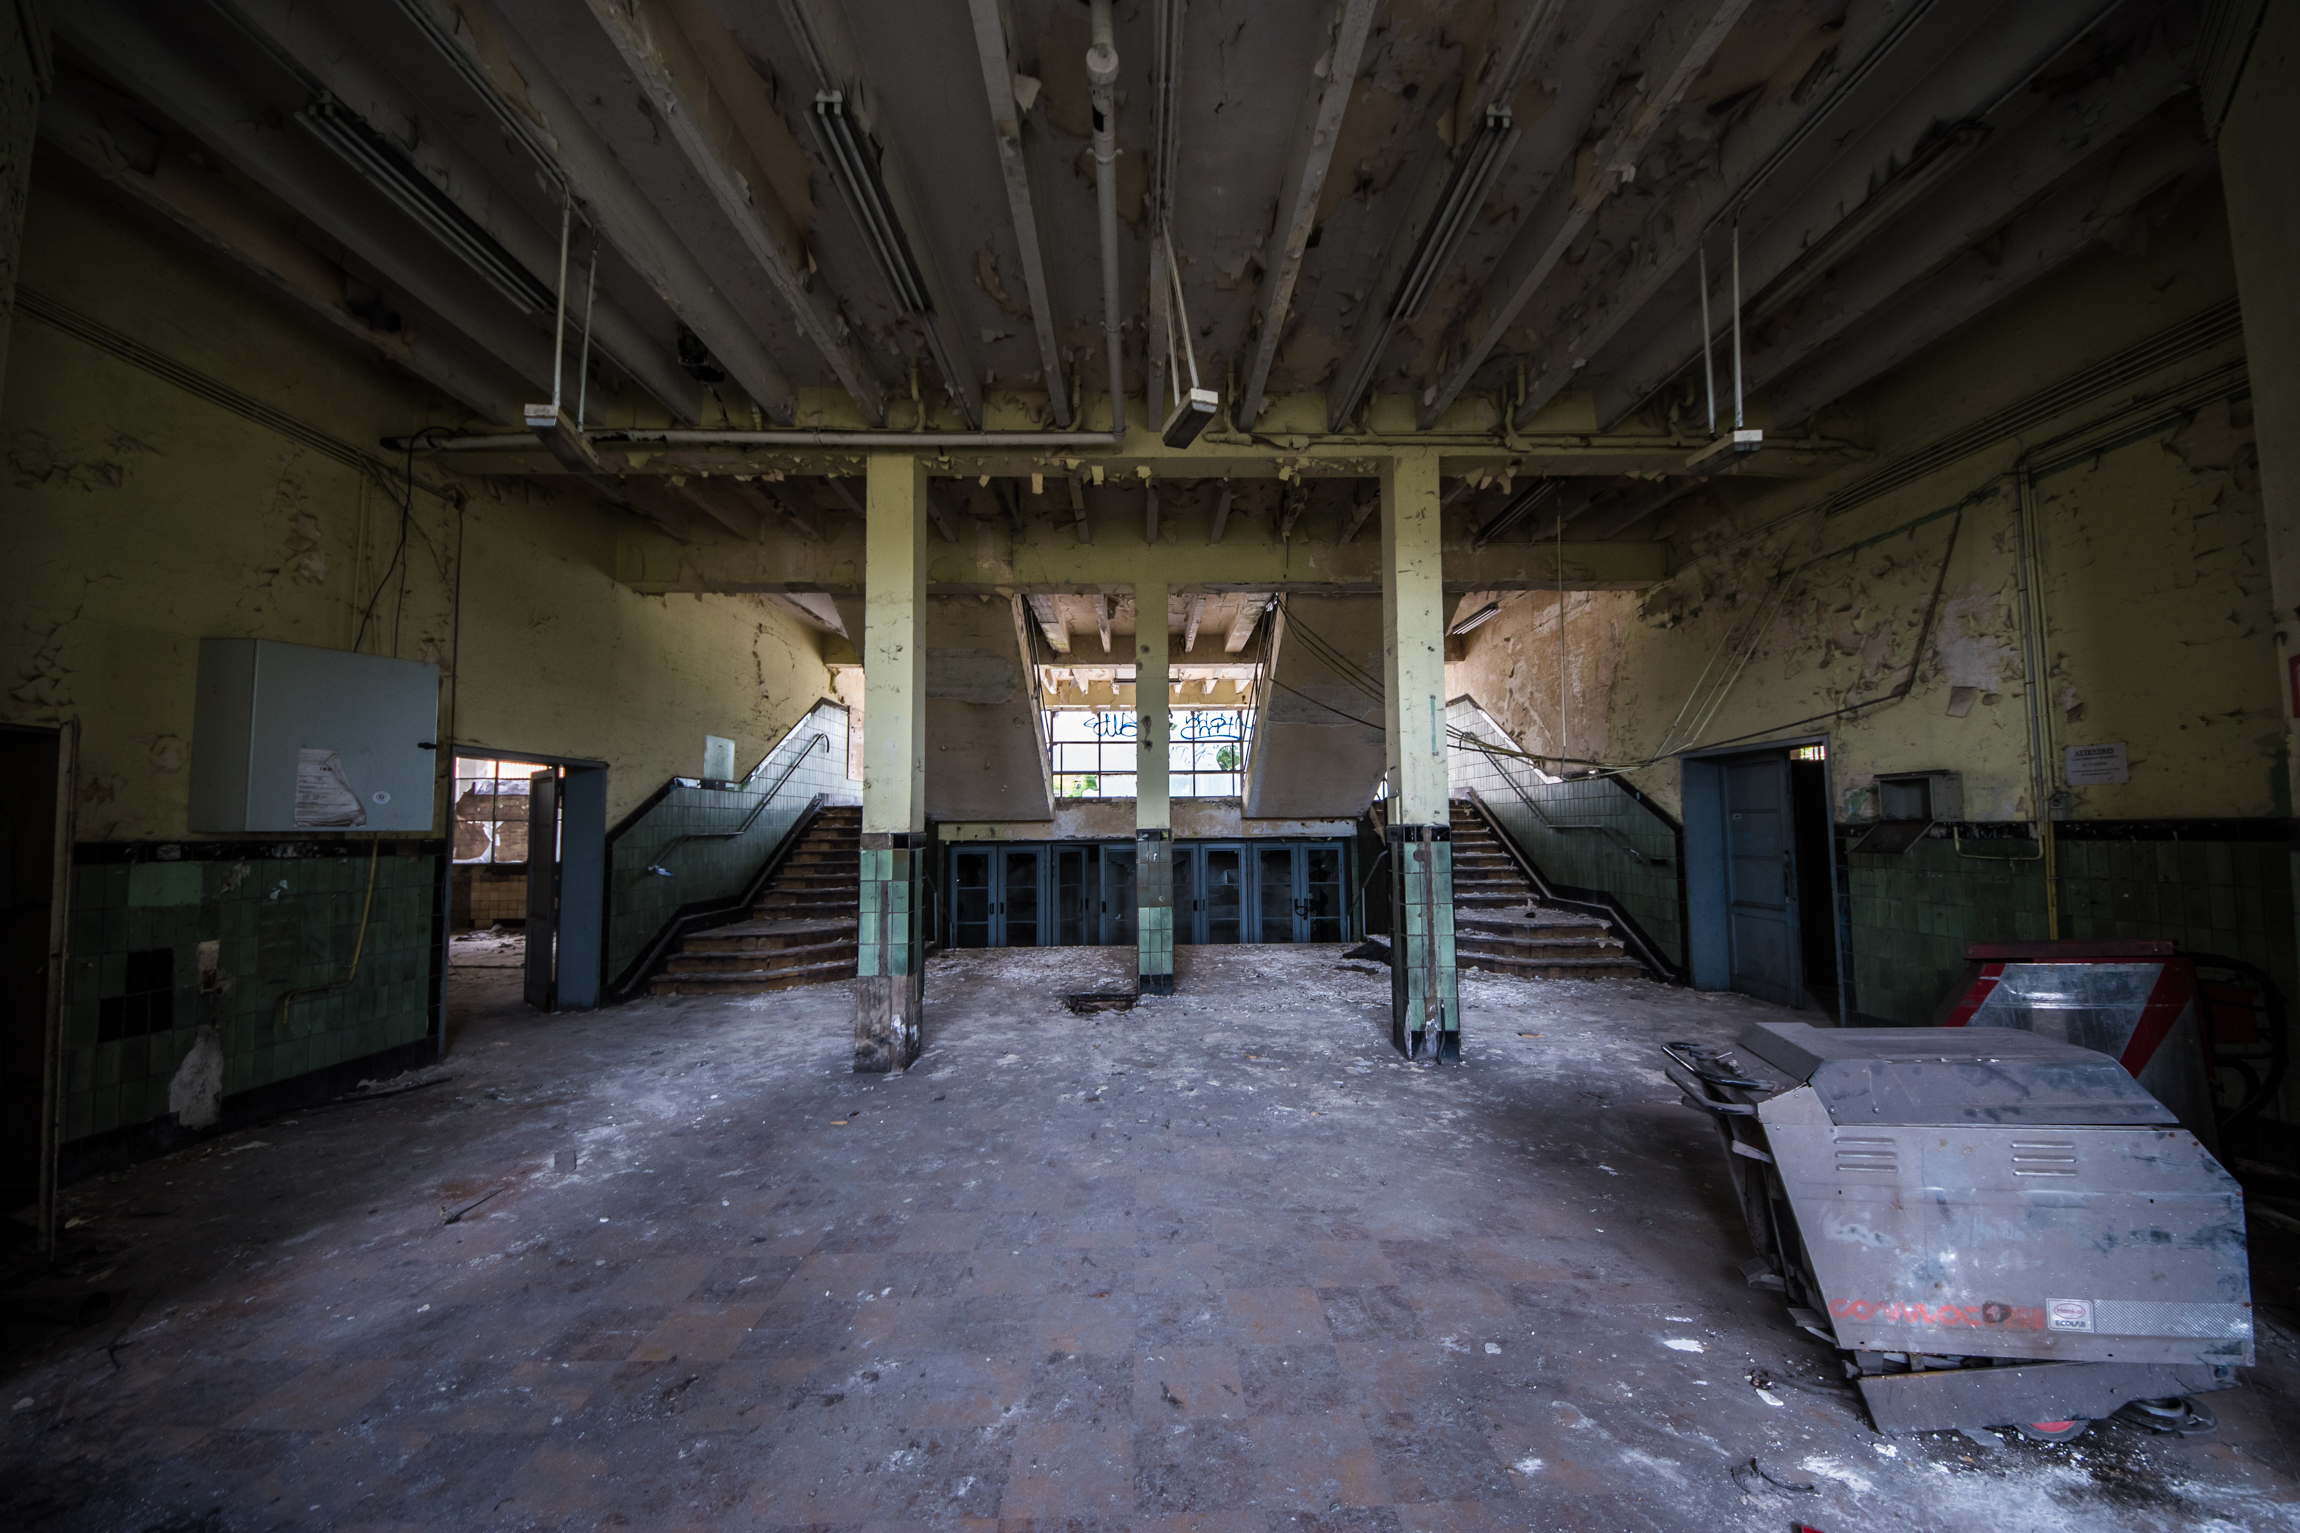 Steelworkers Baths - This was the entrance/showers and locker area for the probably hordes of workers coming in daily to sweat on this huge industrial site.There was something pleasing and almost art deco about this place.